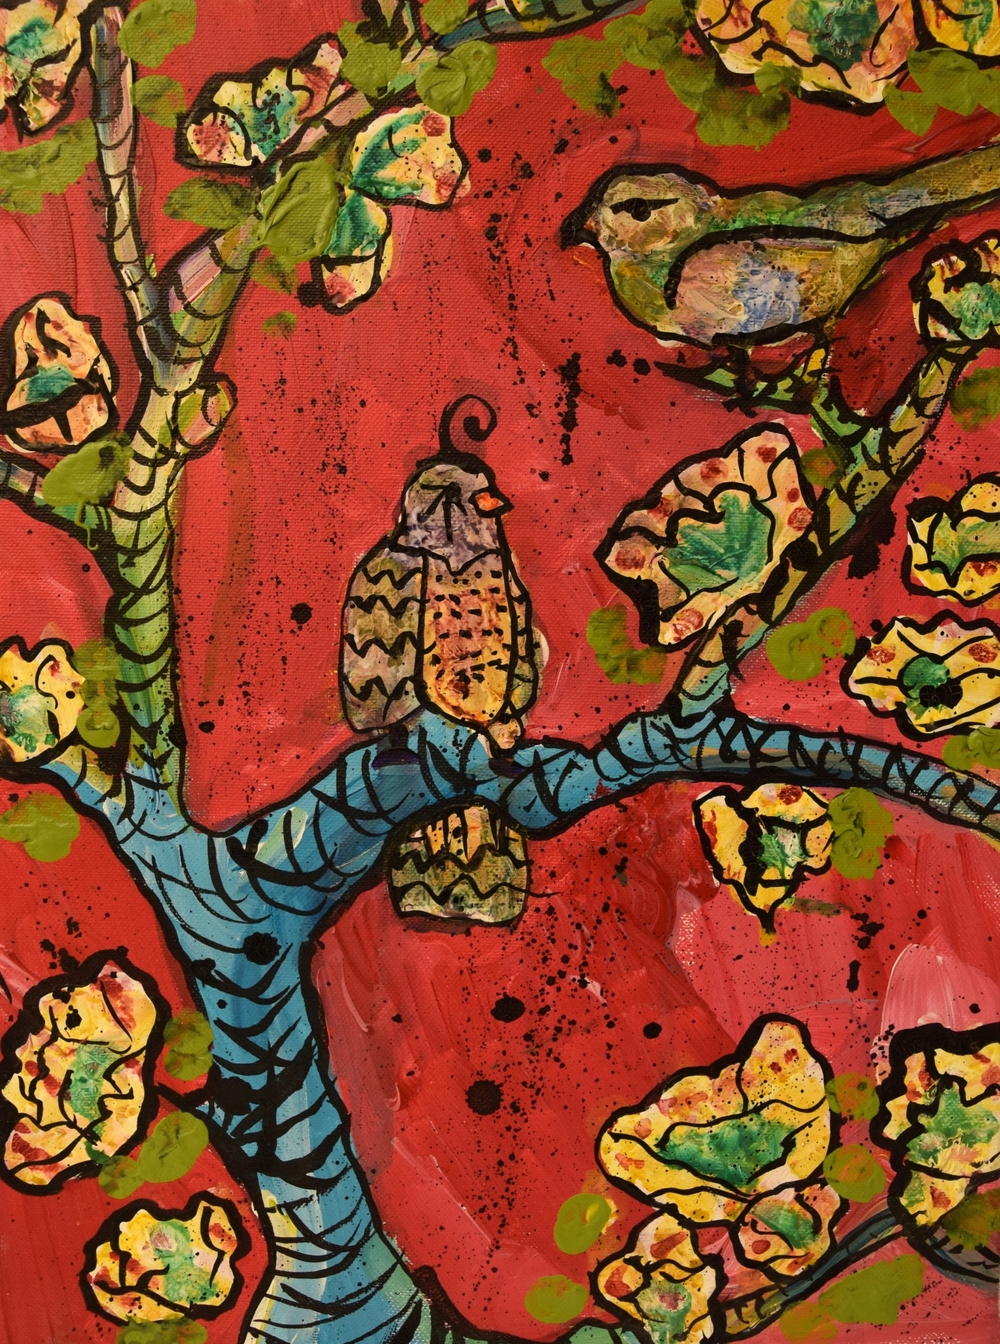 "Birds/ Mixed Media on Canvas/ 12x16""/ July 2012"